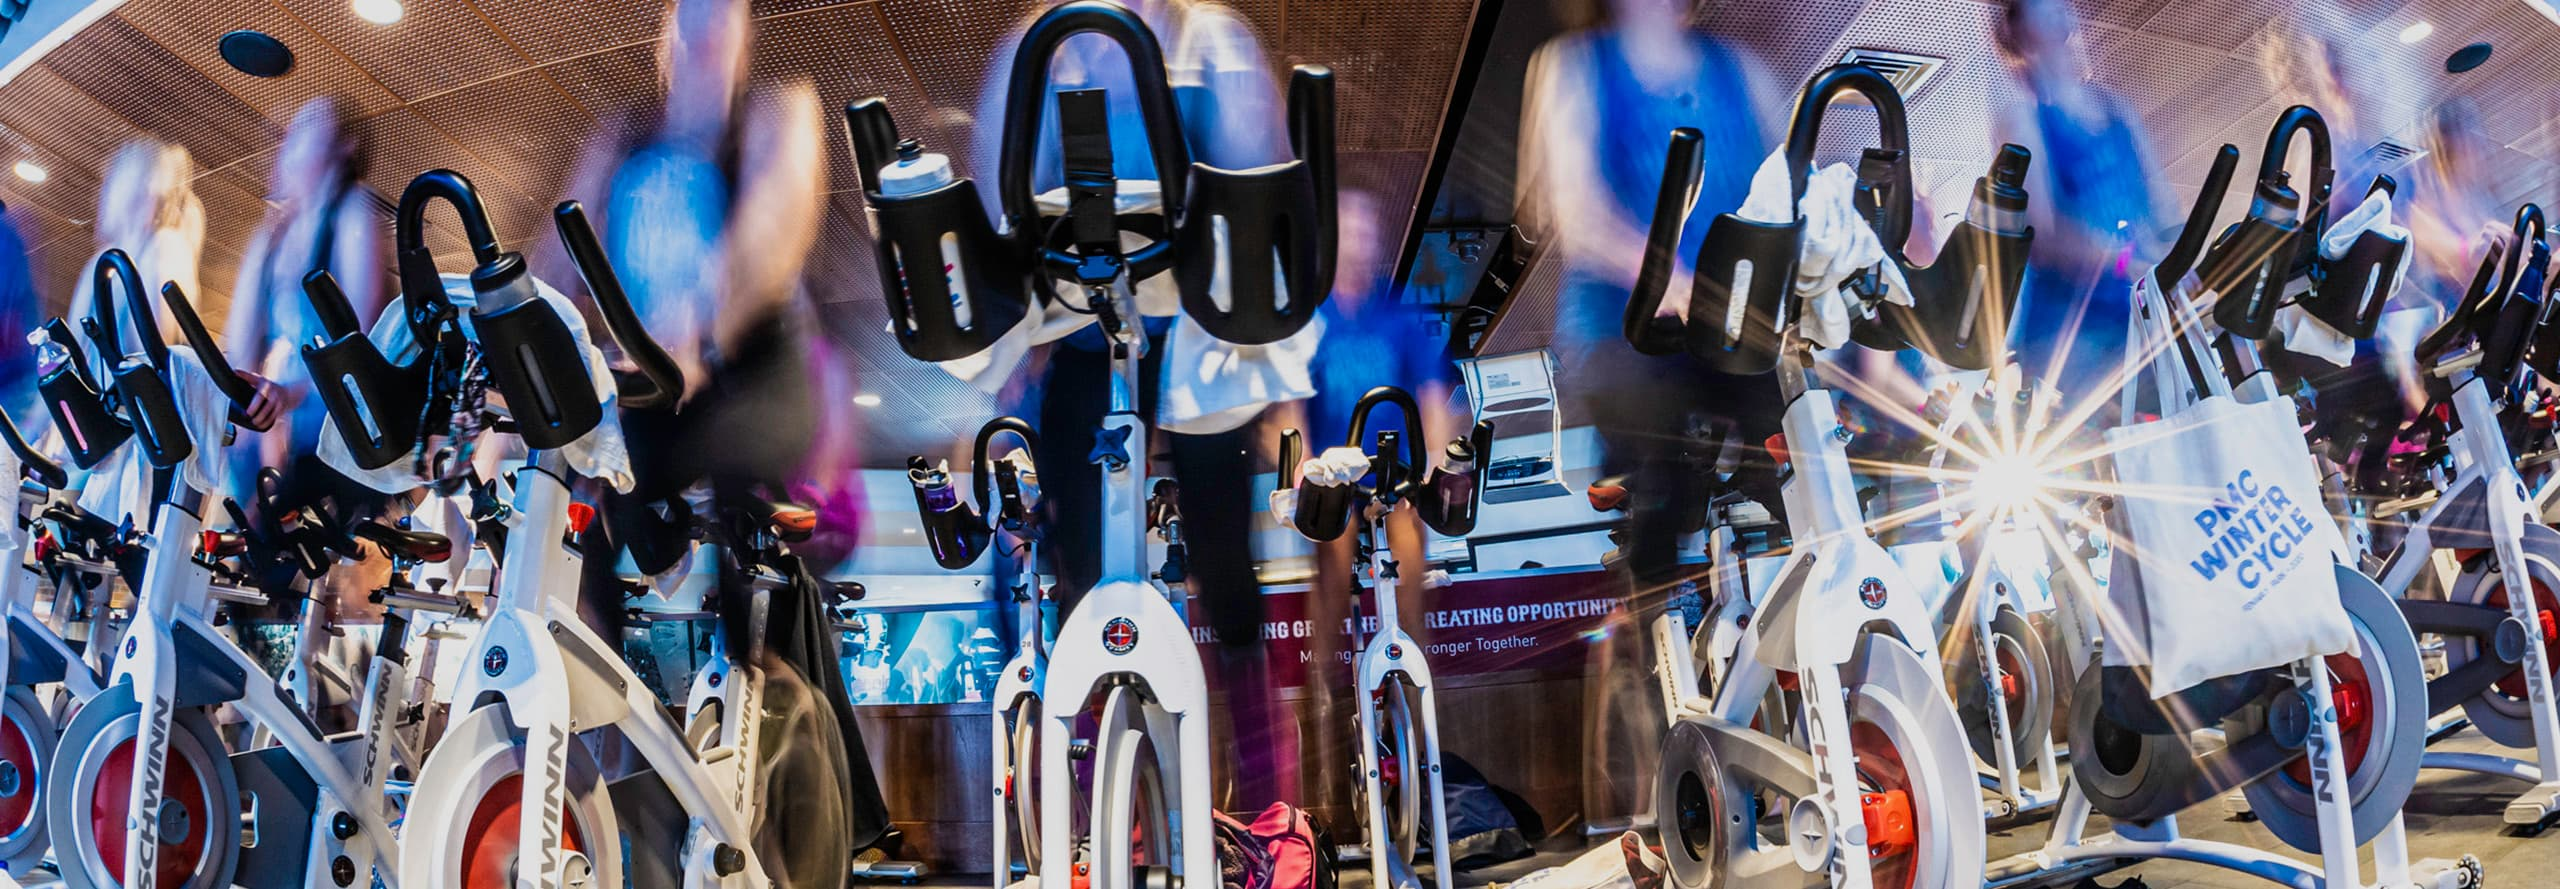 winter_cycle_home_101620_xl-2